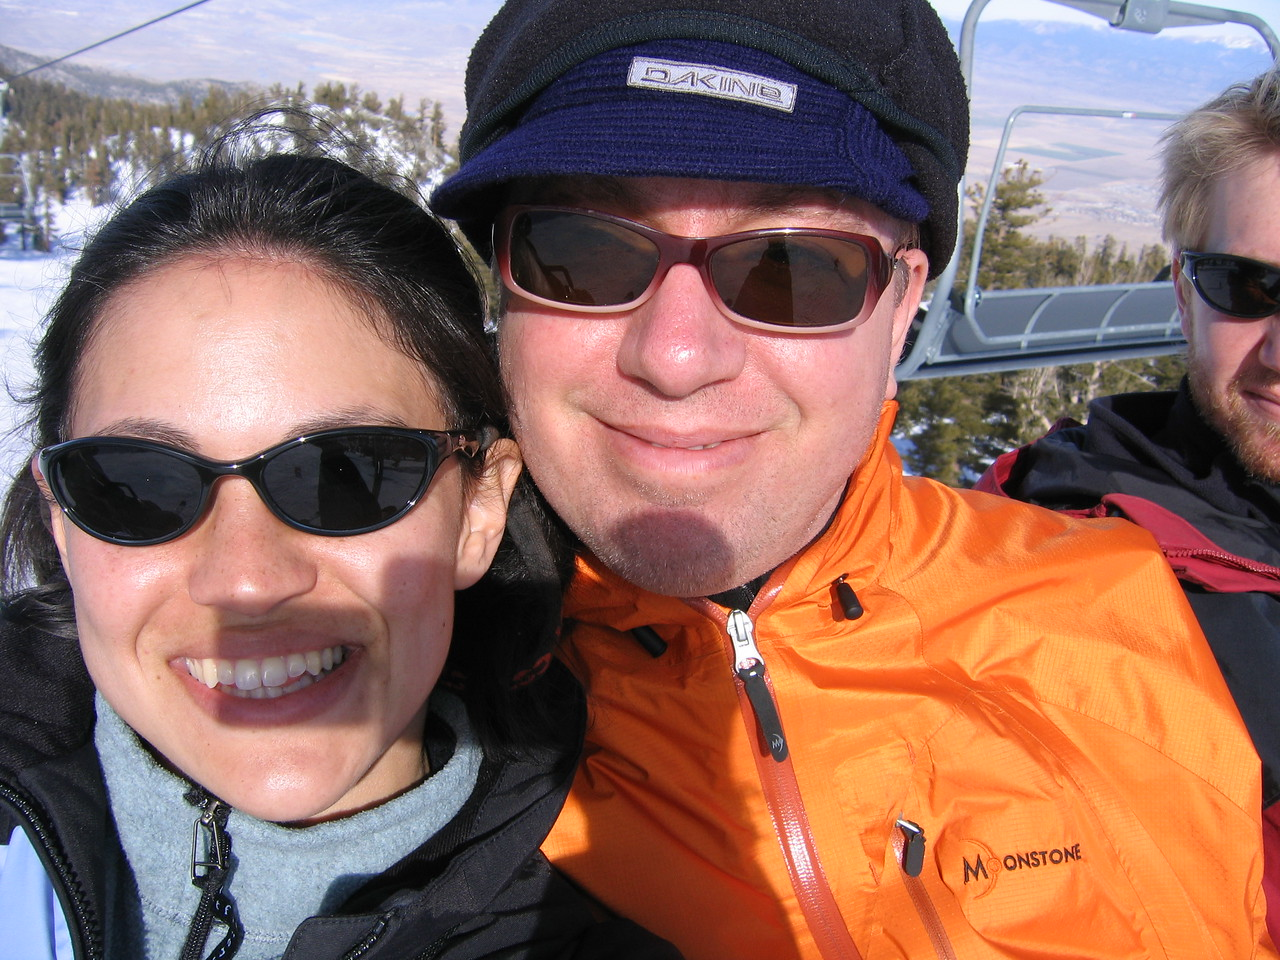 Me and Philip with a square shadow. Oops.